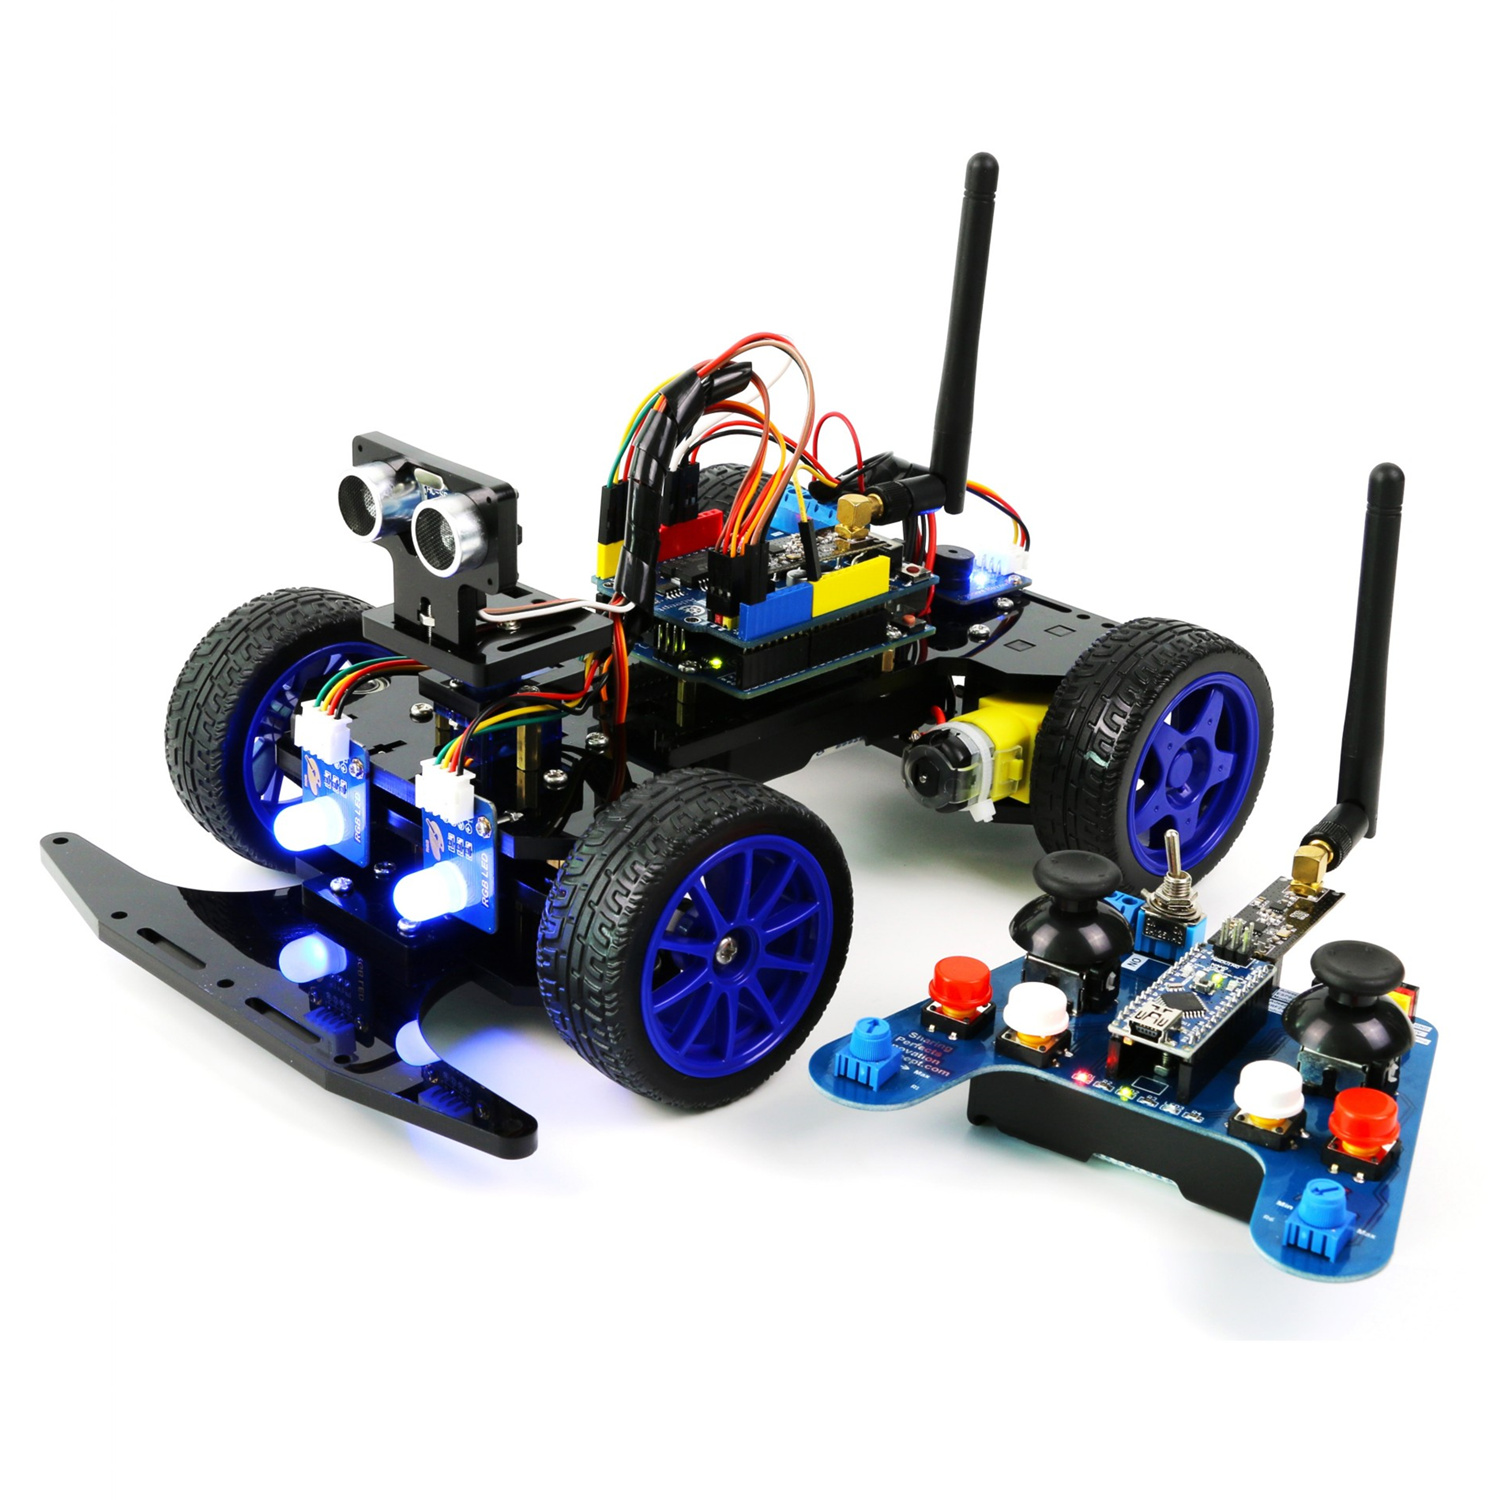 Adeept Remote Control Smart Car Kit for Arduino based on NRF24L01 2 4G  Wireless, Robot Starter Kit with PDF Guidebook/Tutorial